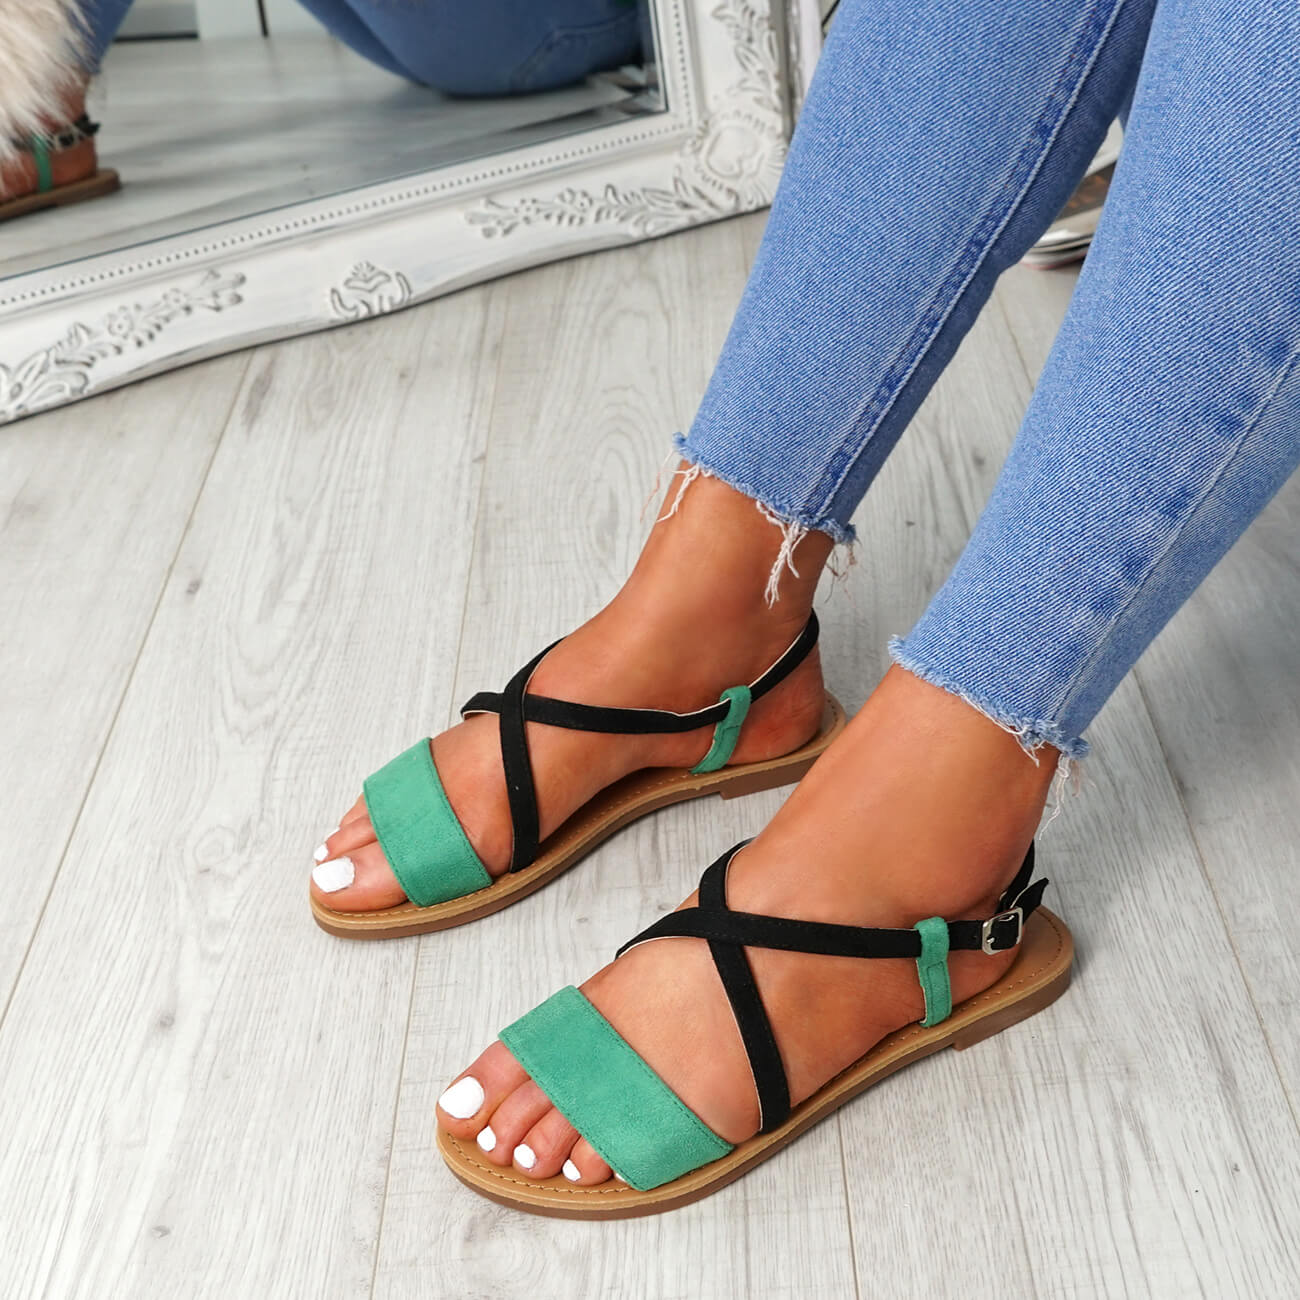 WOMENS-LADIES-ANKLE-STRAP-PEEP-TOE-FLAT-SANDALS-COMFY-SUMMER-SHOES-SIZE thumbnail 13